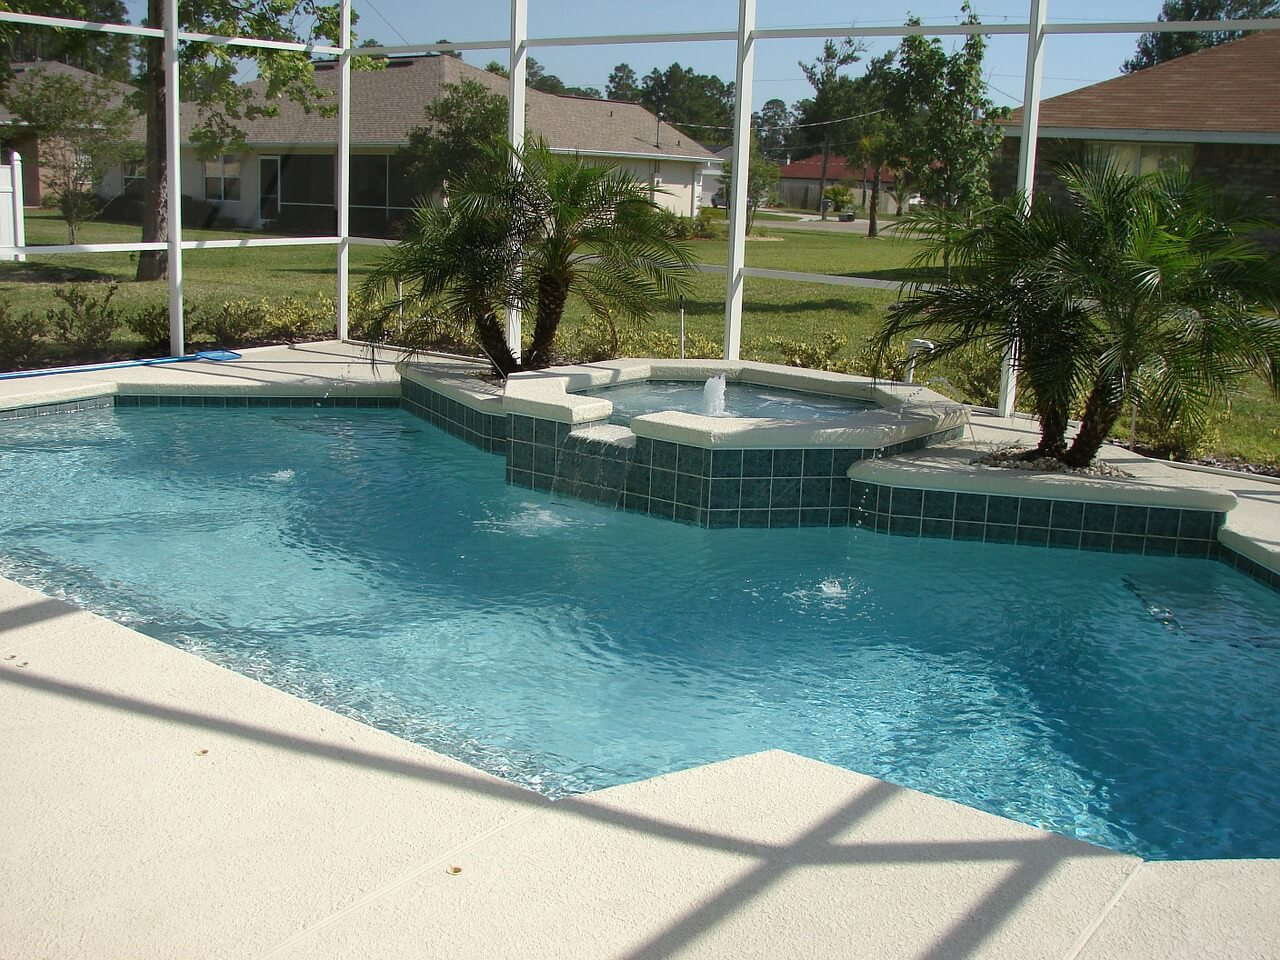 maintain decking with New Image Landscape and Pools today